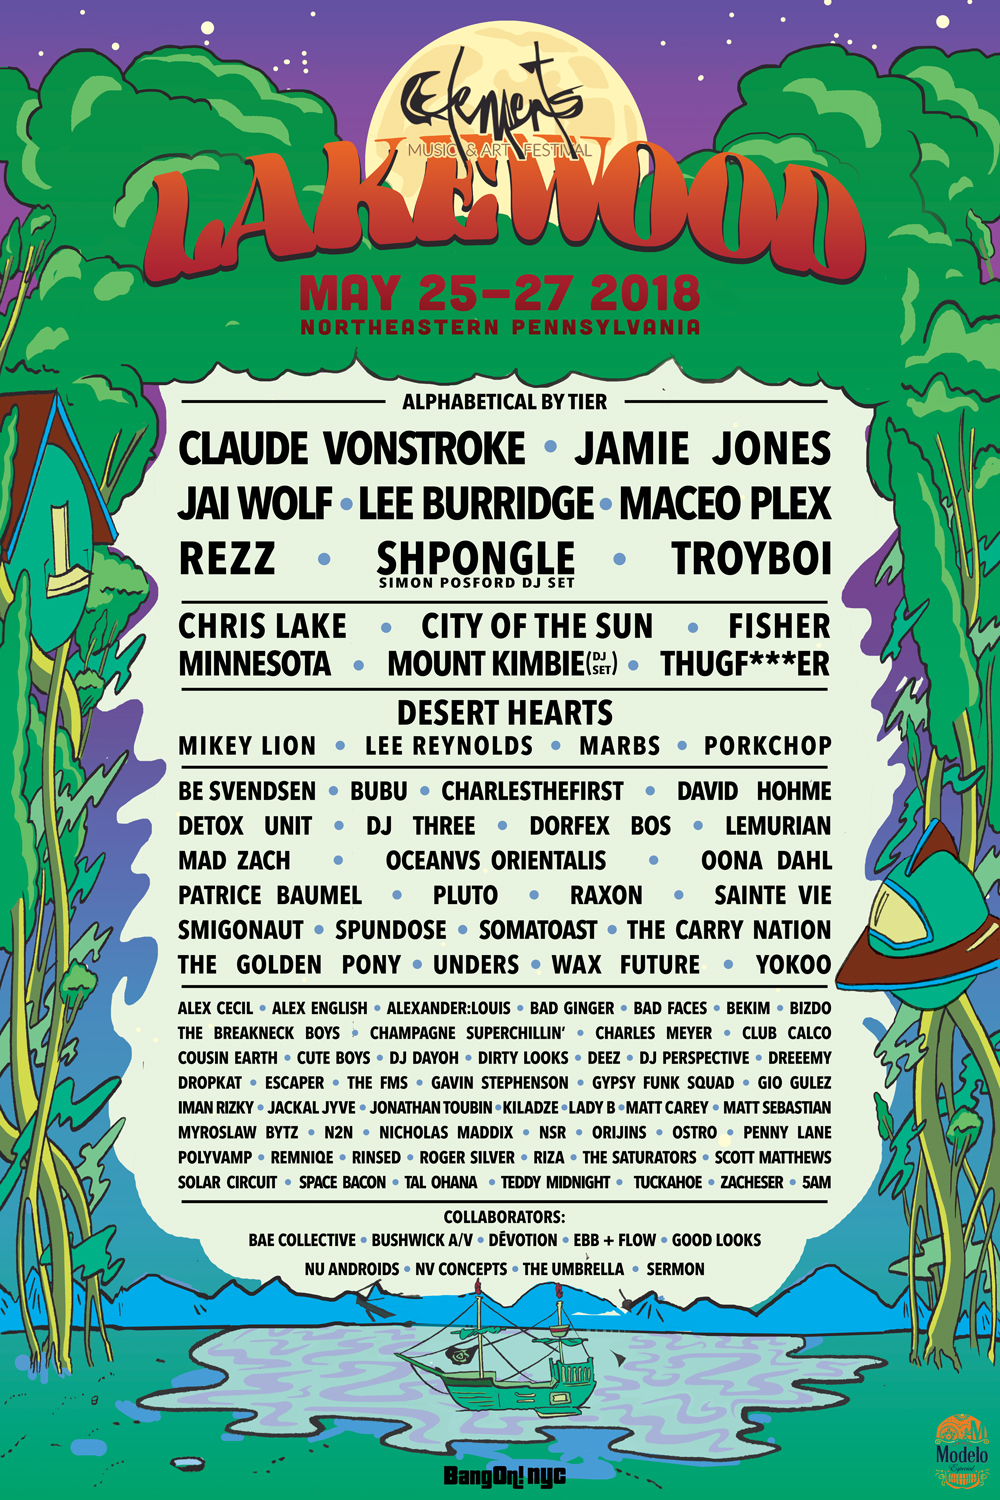 Music Festival Featuring Rezz, Troyboi, And More Will Accept Cryptocurrency For Tickets